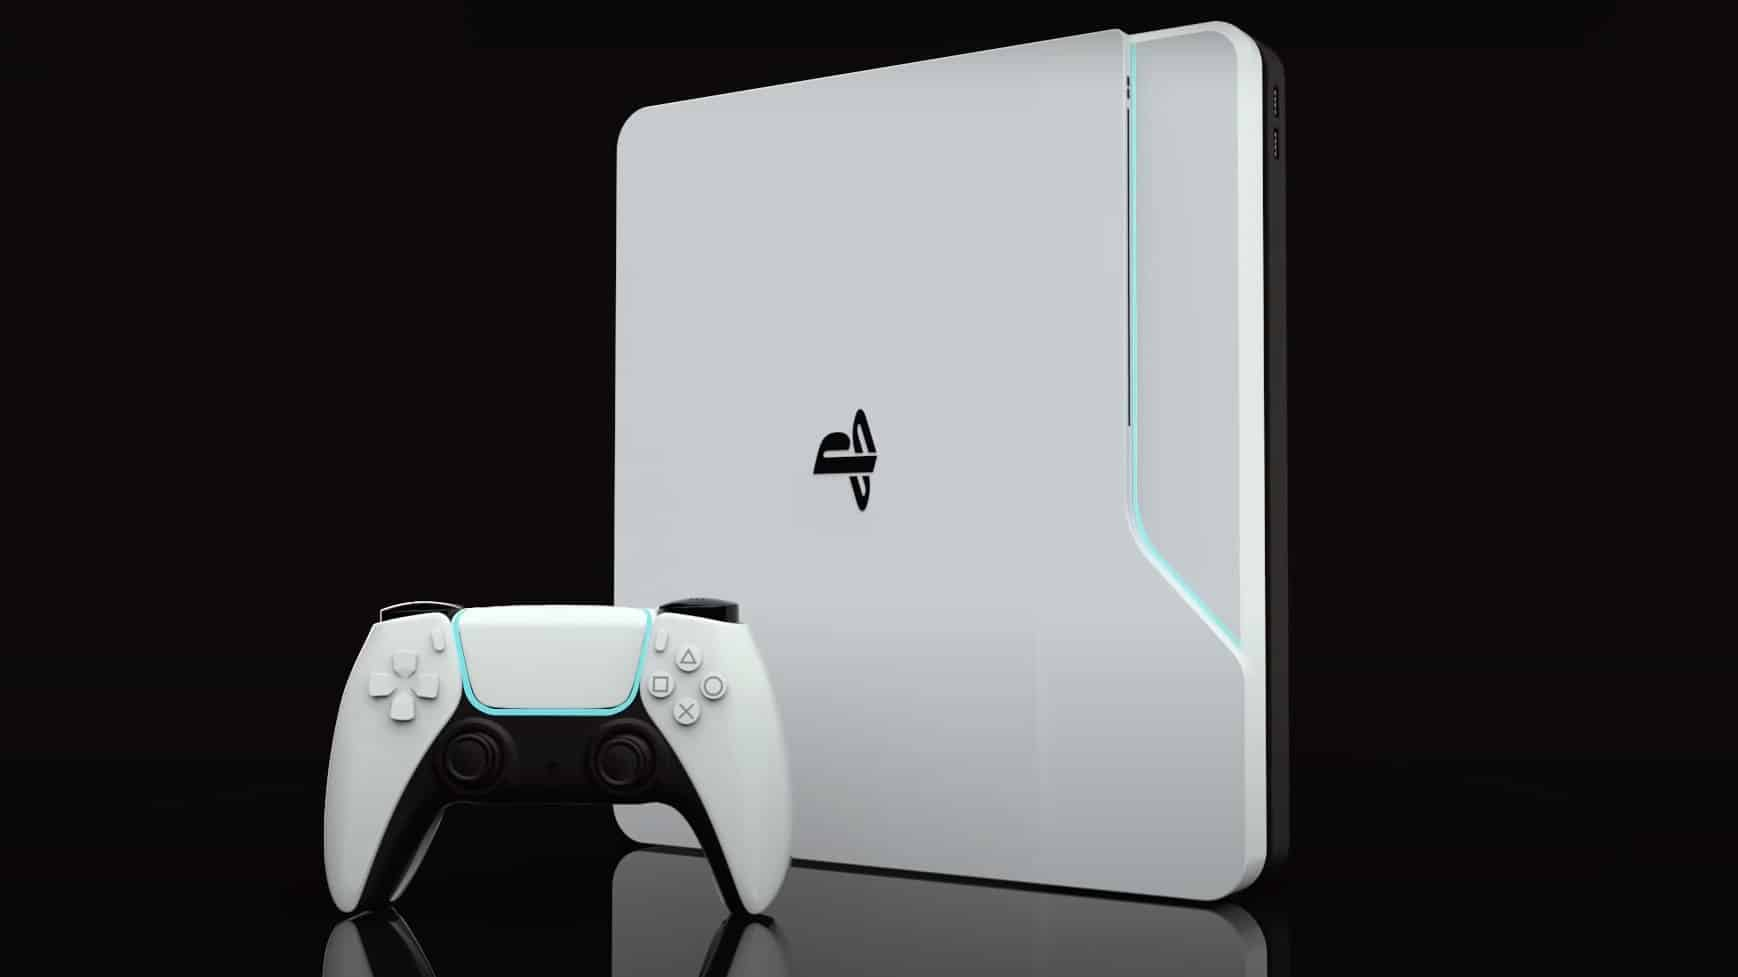 The new PS5